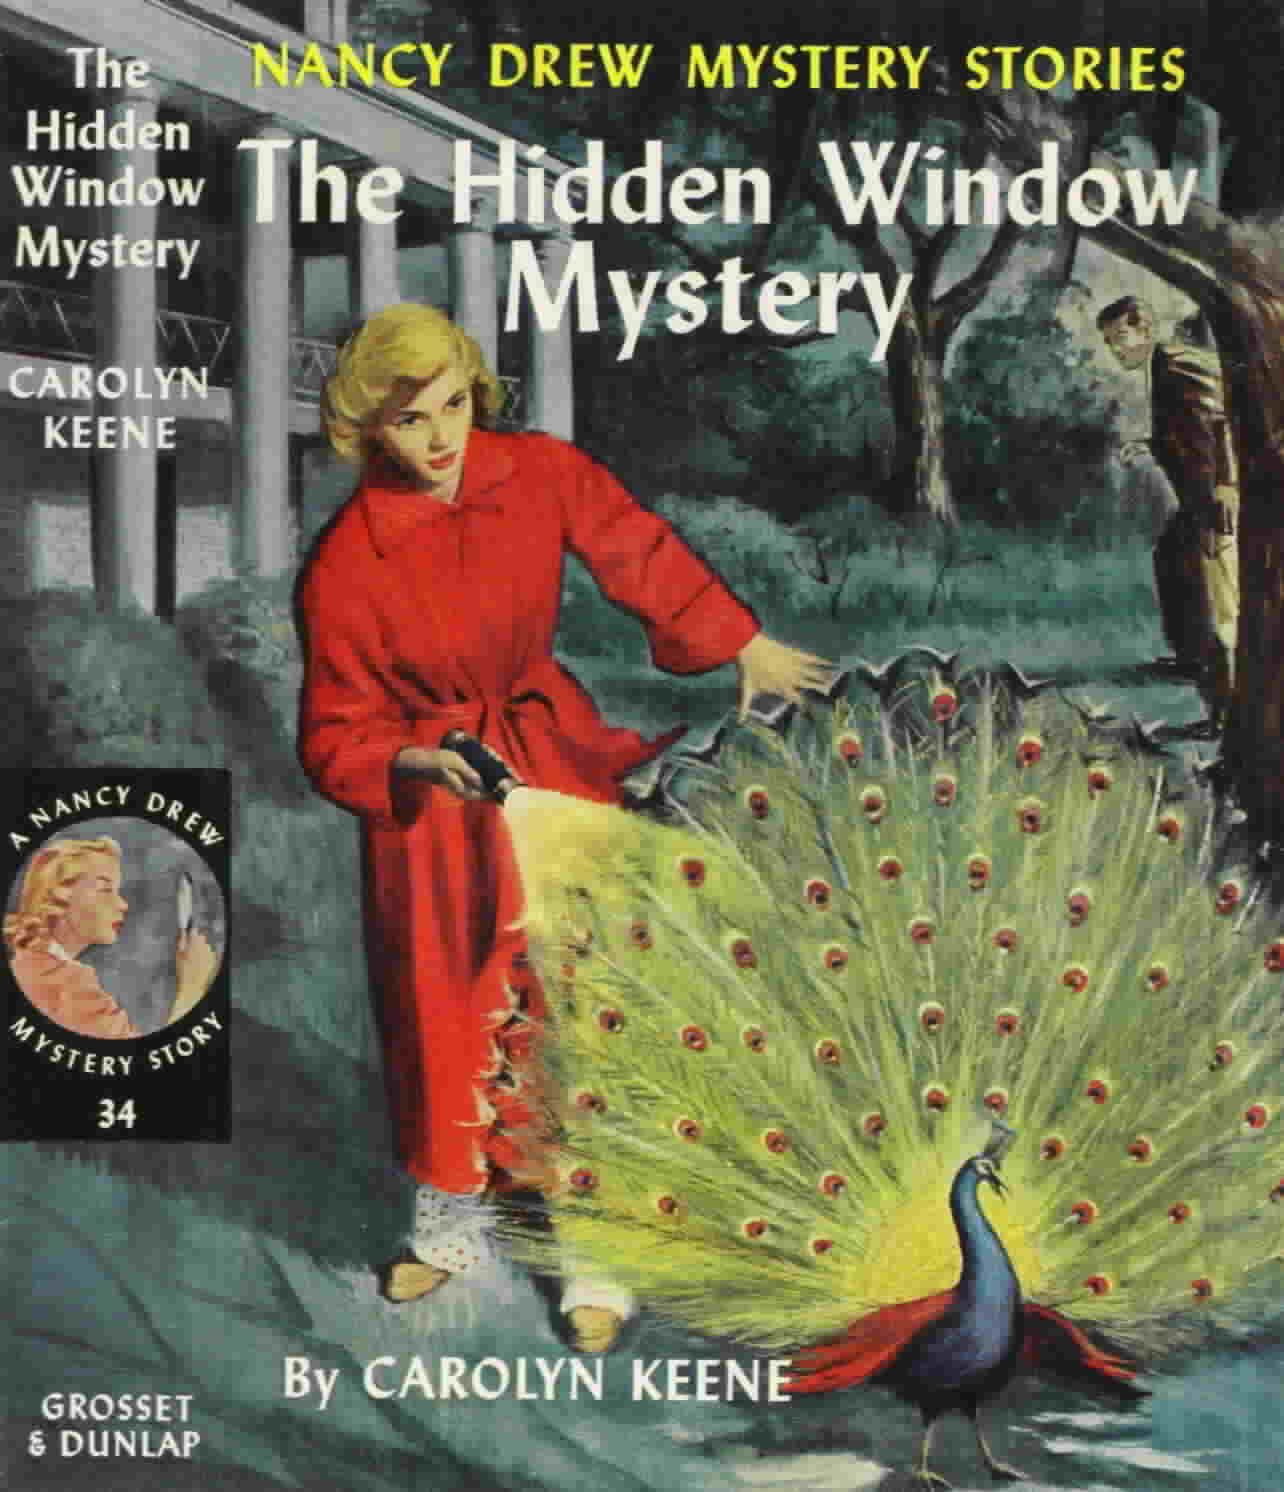 The Hidden Window Mystery